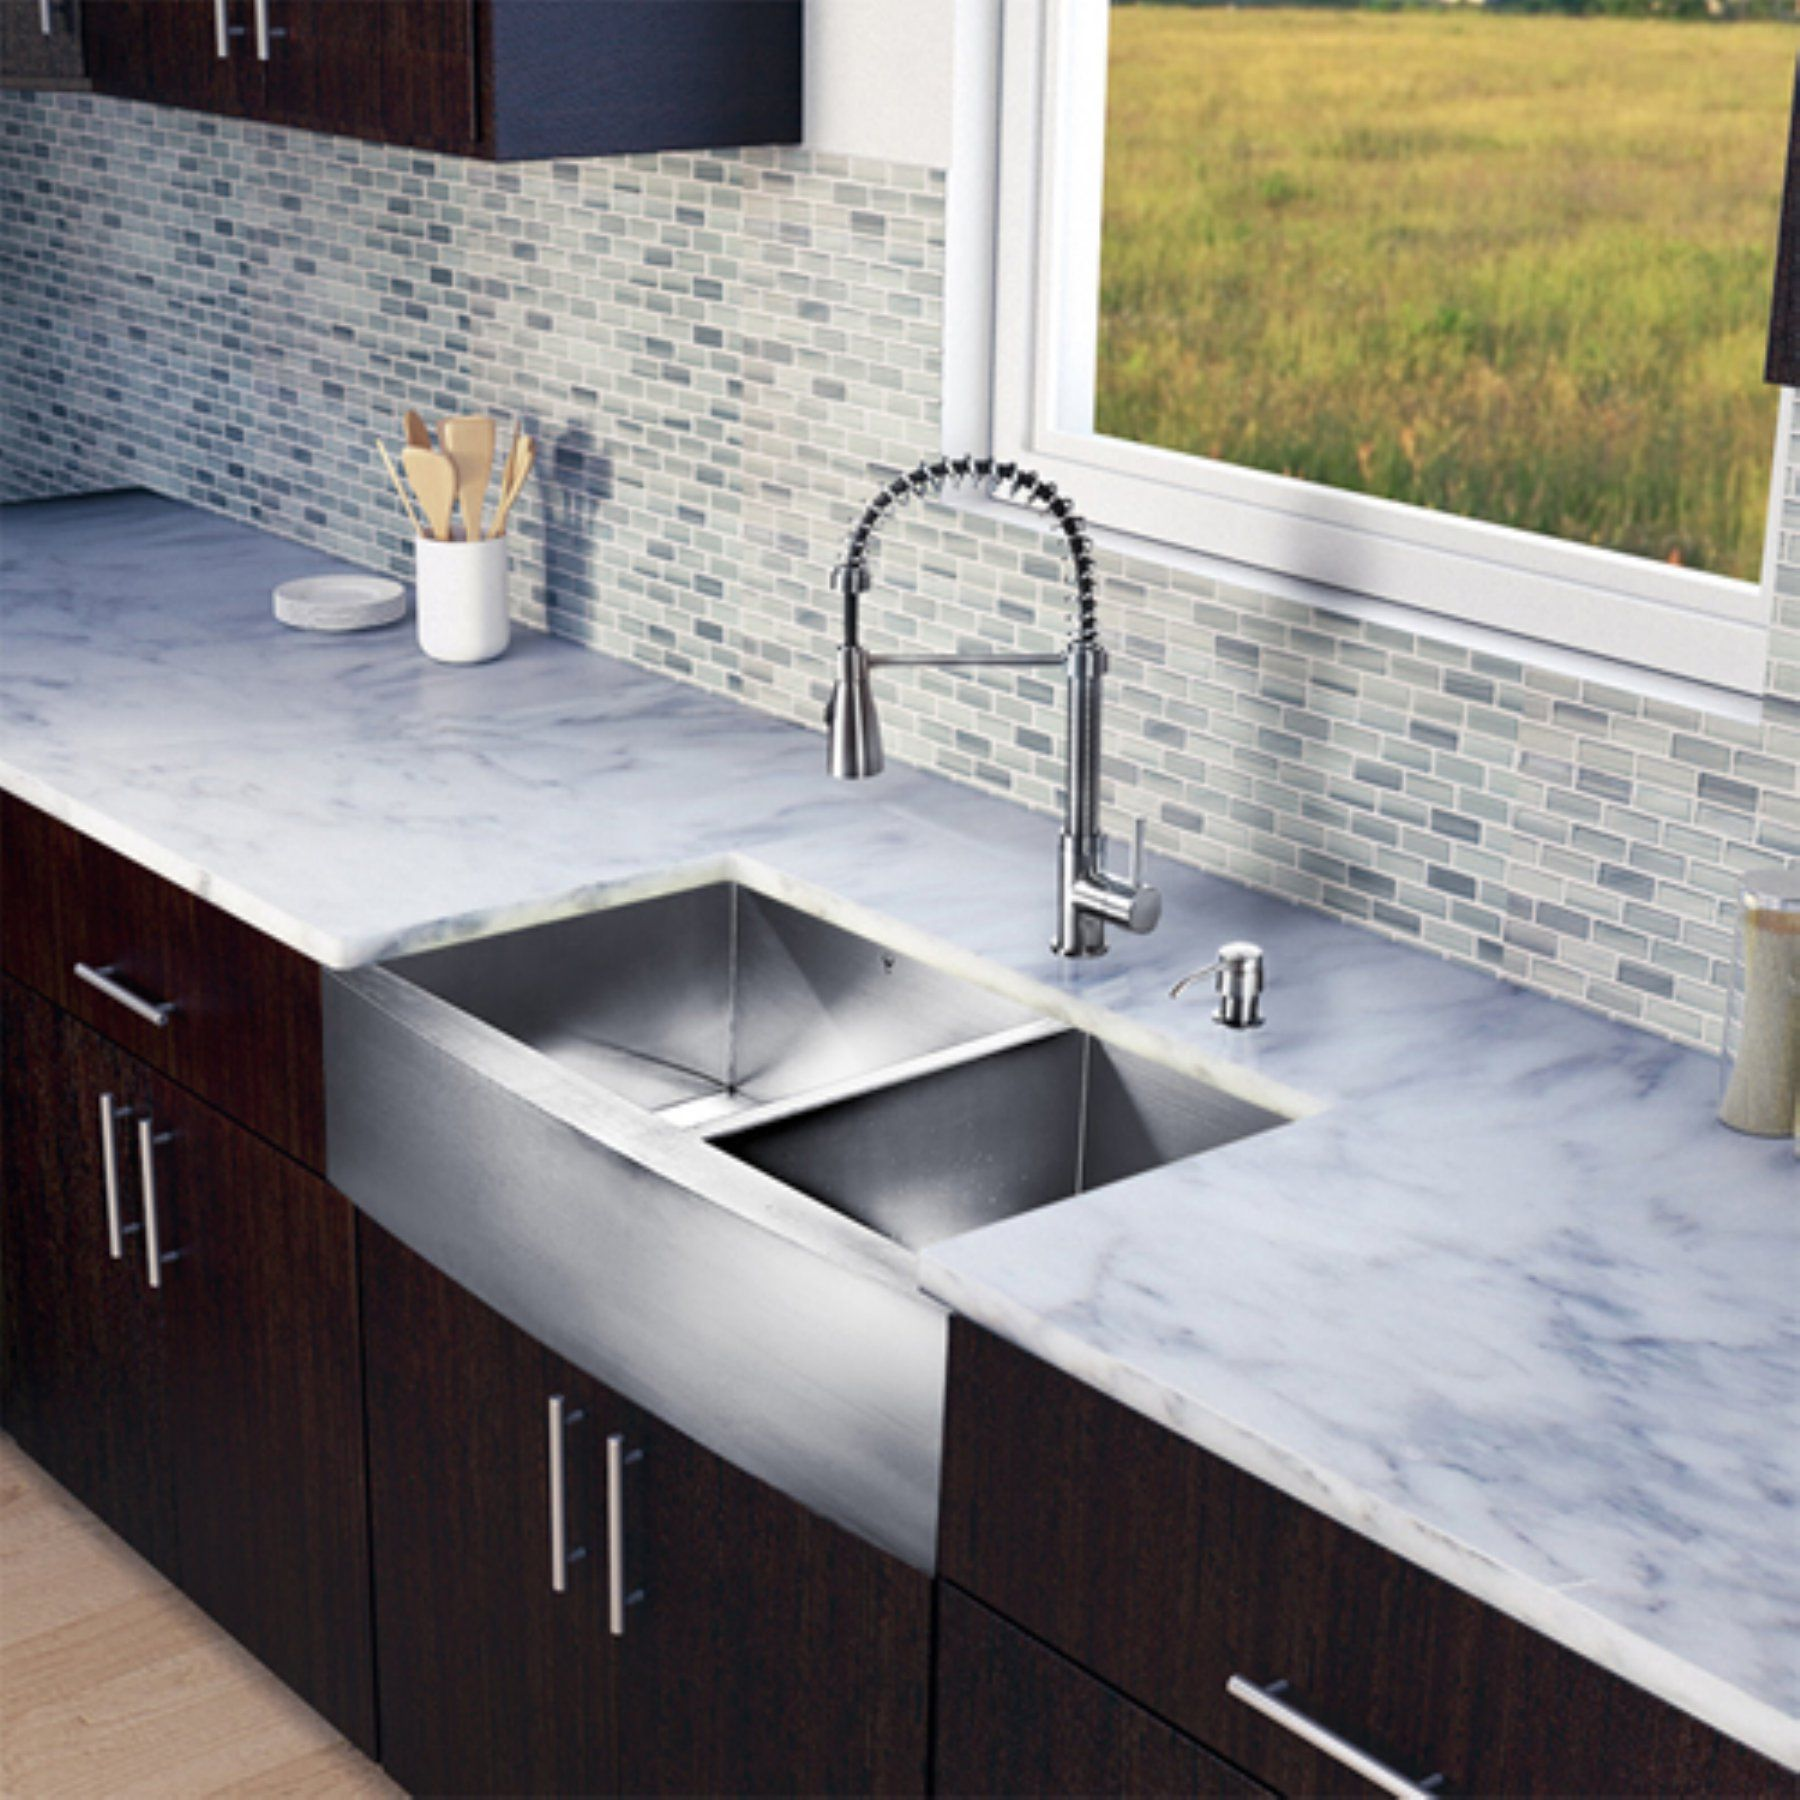 Vigo Vg15195 Double Basin Farmhouse Kitchen Sink And Faucet Set